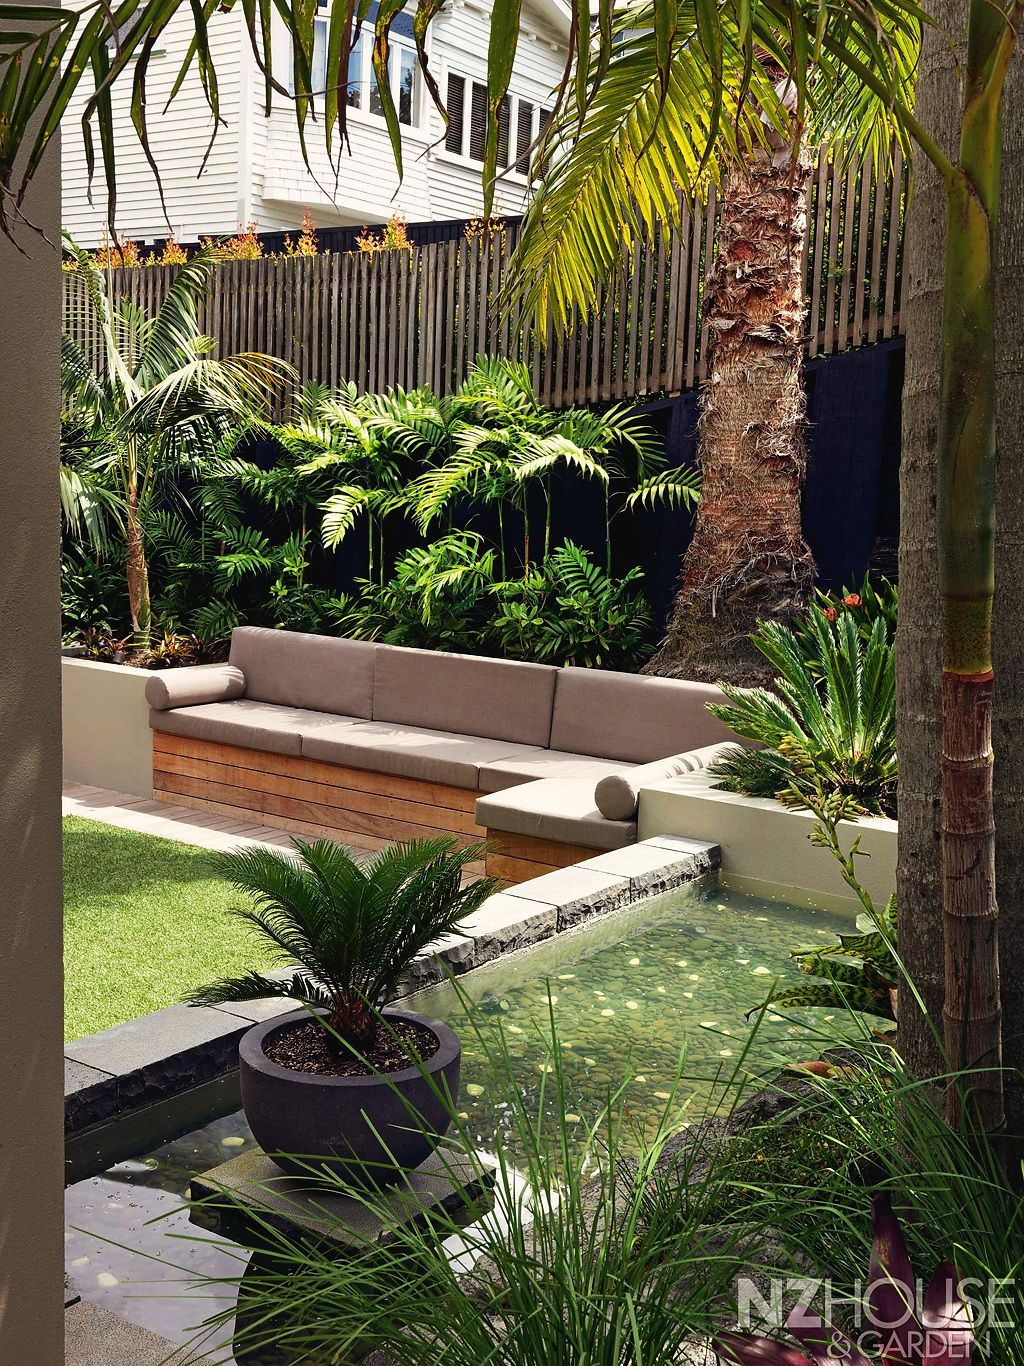 Home landscape design via christina khandan irvine for Courtyard landscaping ideas